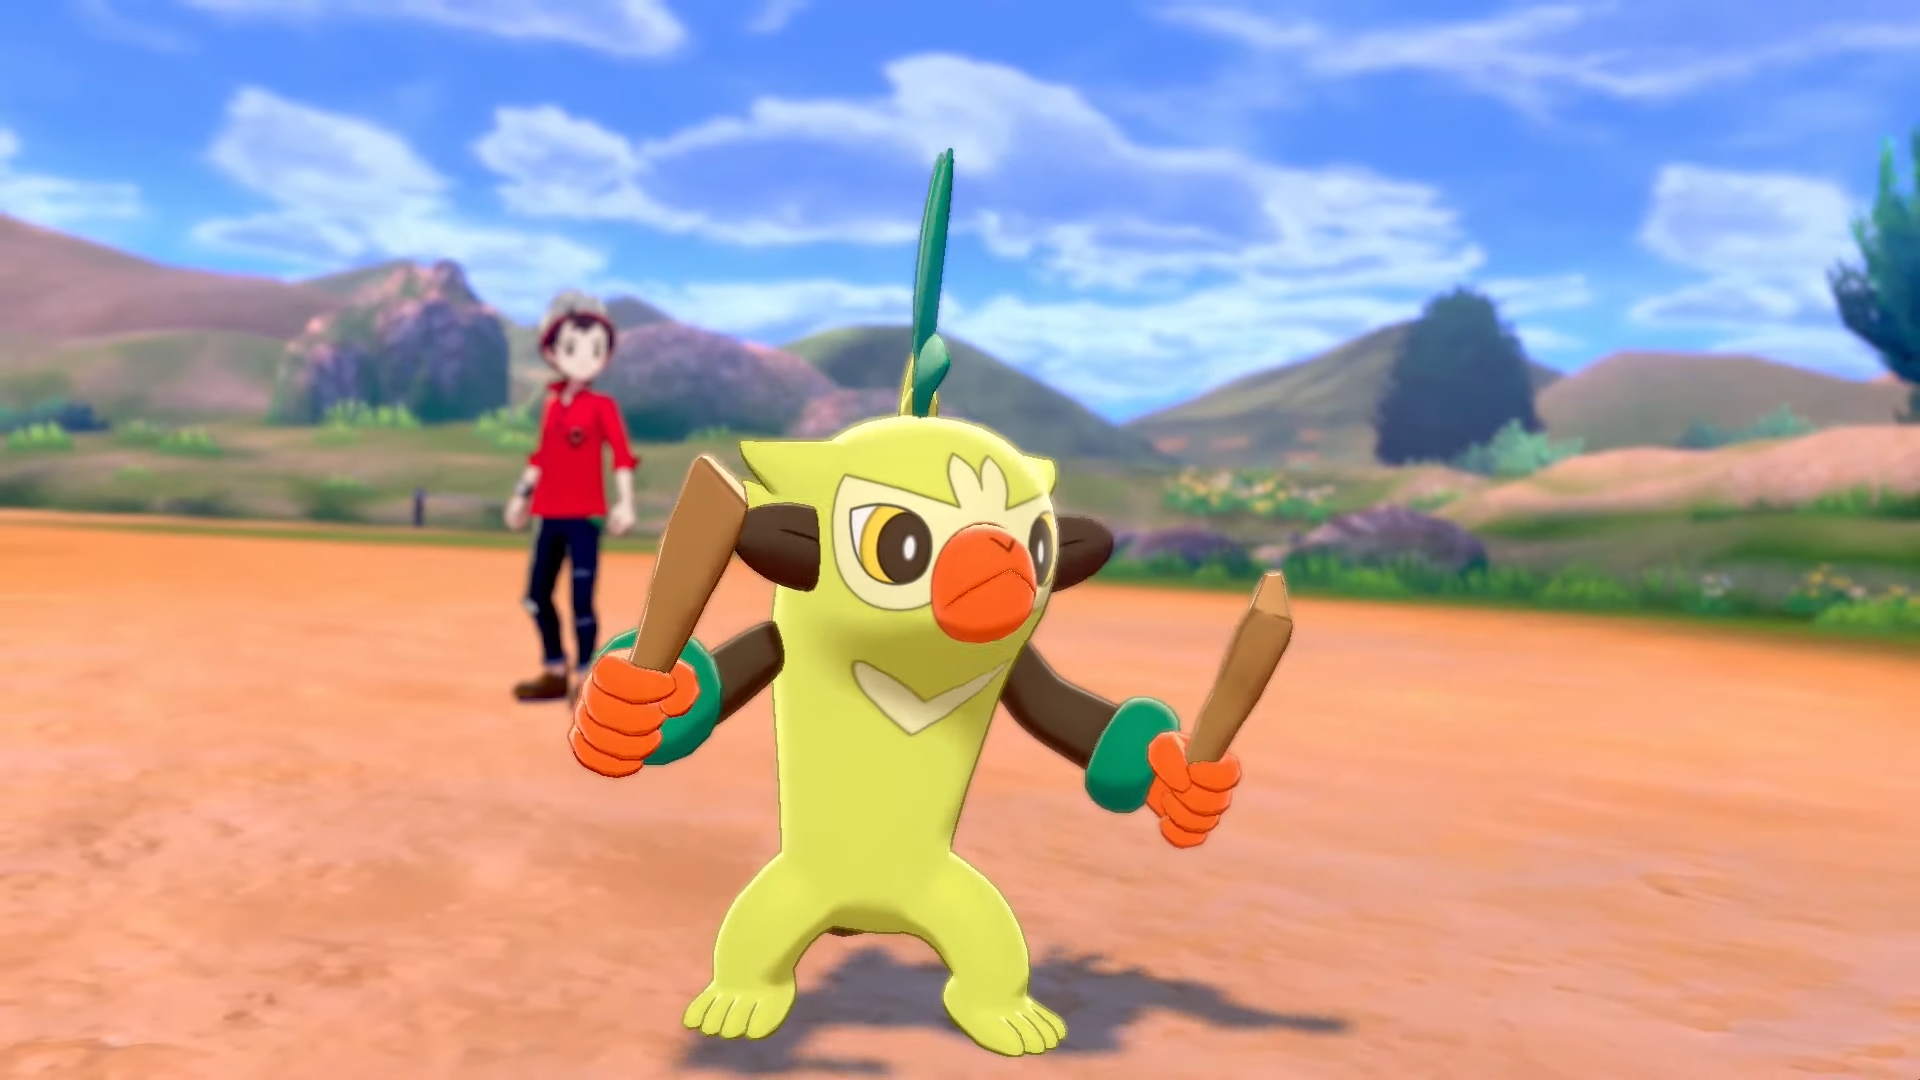 Official Artwork Released For Grookey Sobble And Scorbunny Evolutions Gigantamax Snorlax Gonintendo Grookey evolution line from grass to grass/fairy type. official artwork released for grookey